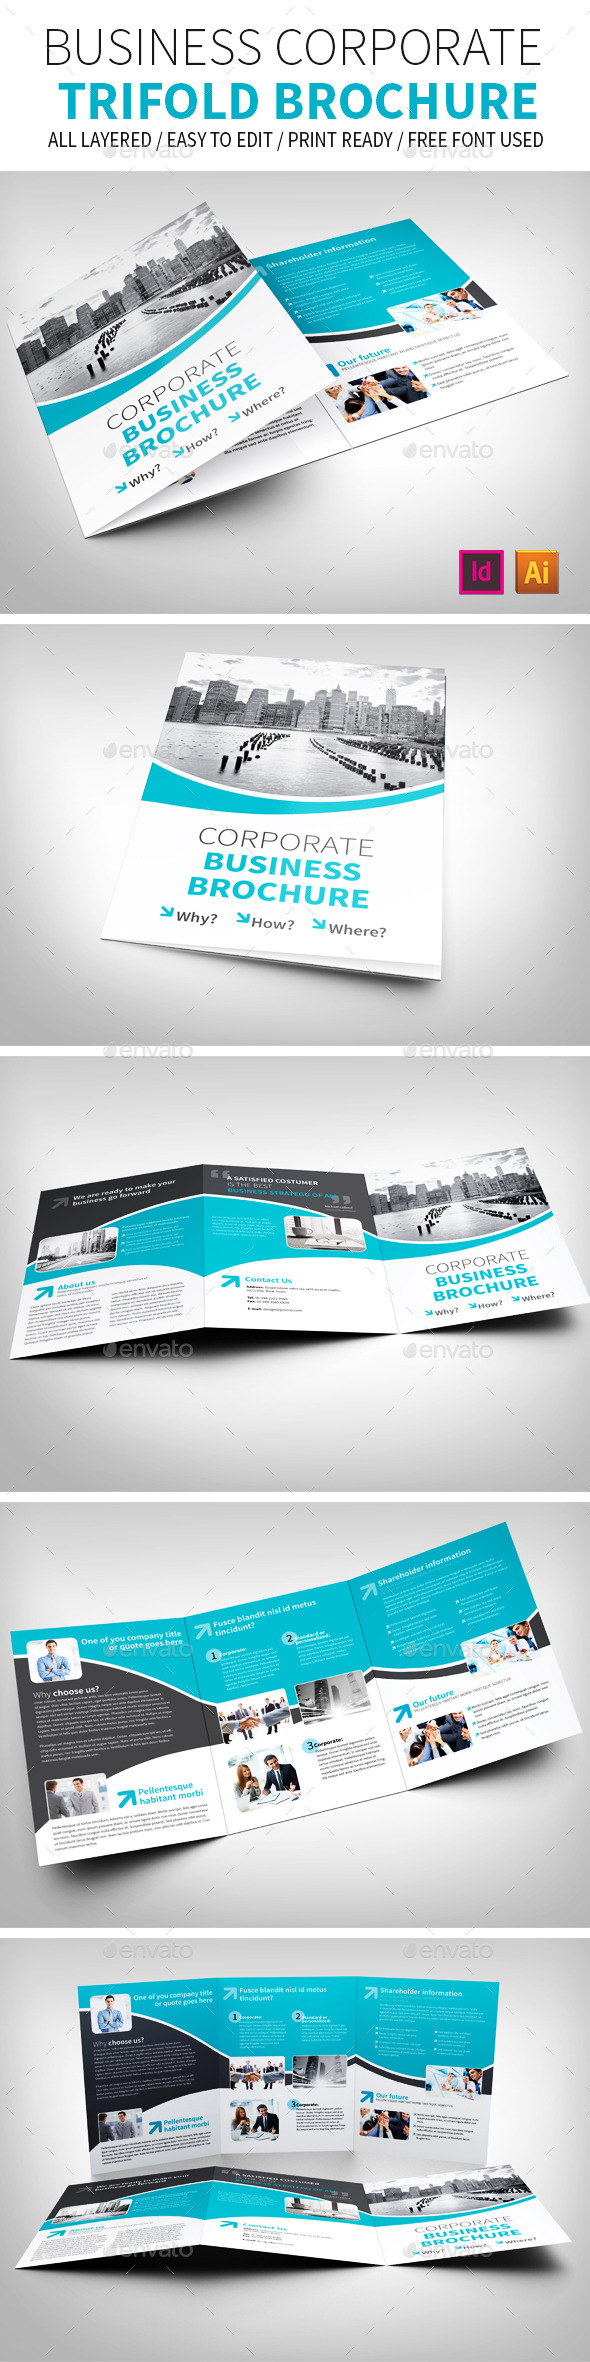 Business Corporate Trifold Brochure - Brochures Print Templates